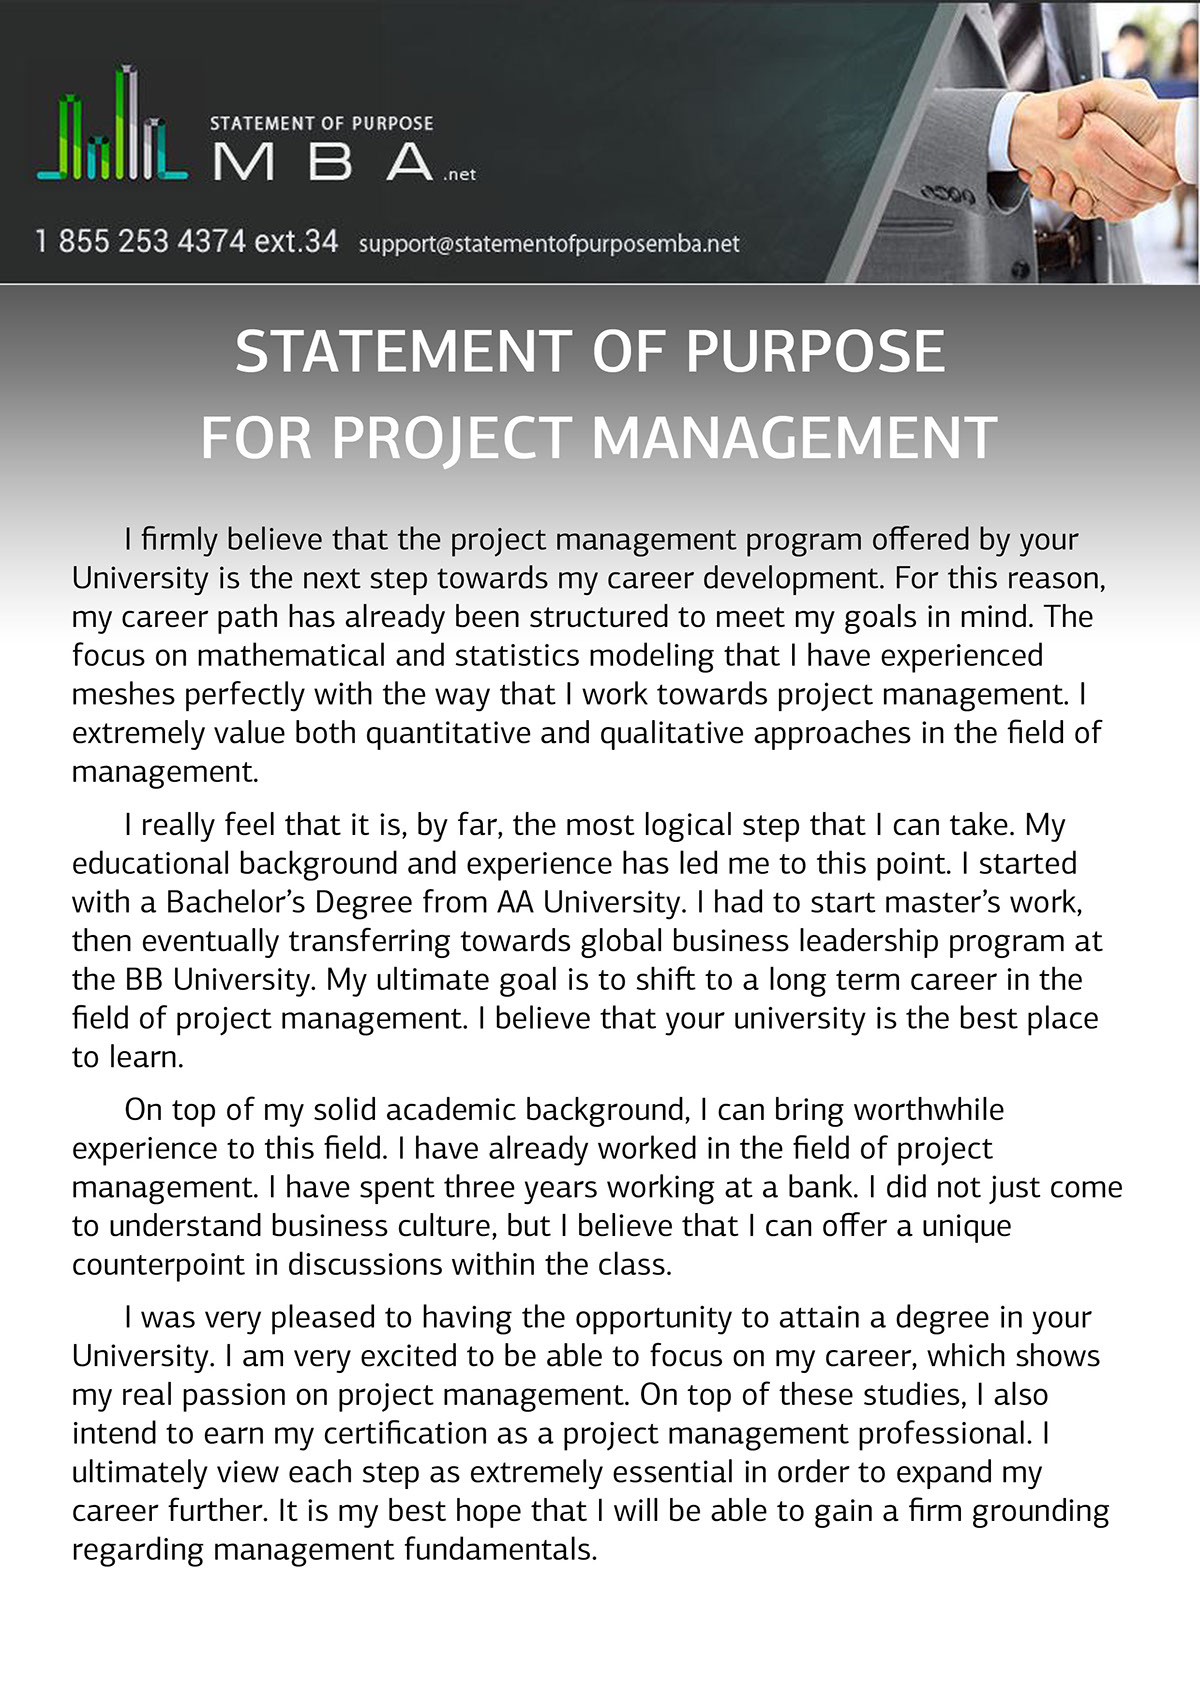 sample statement of purpose for project management on behance check of our sample as an example on statementofpurposemba net professional mba statement of purpose for project management